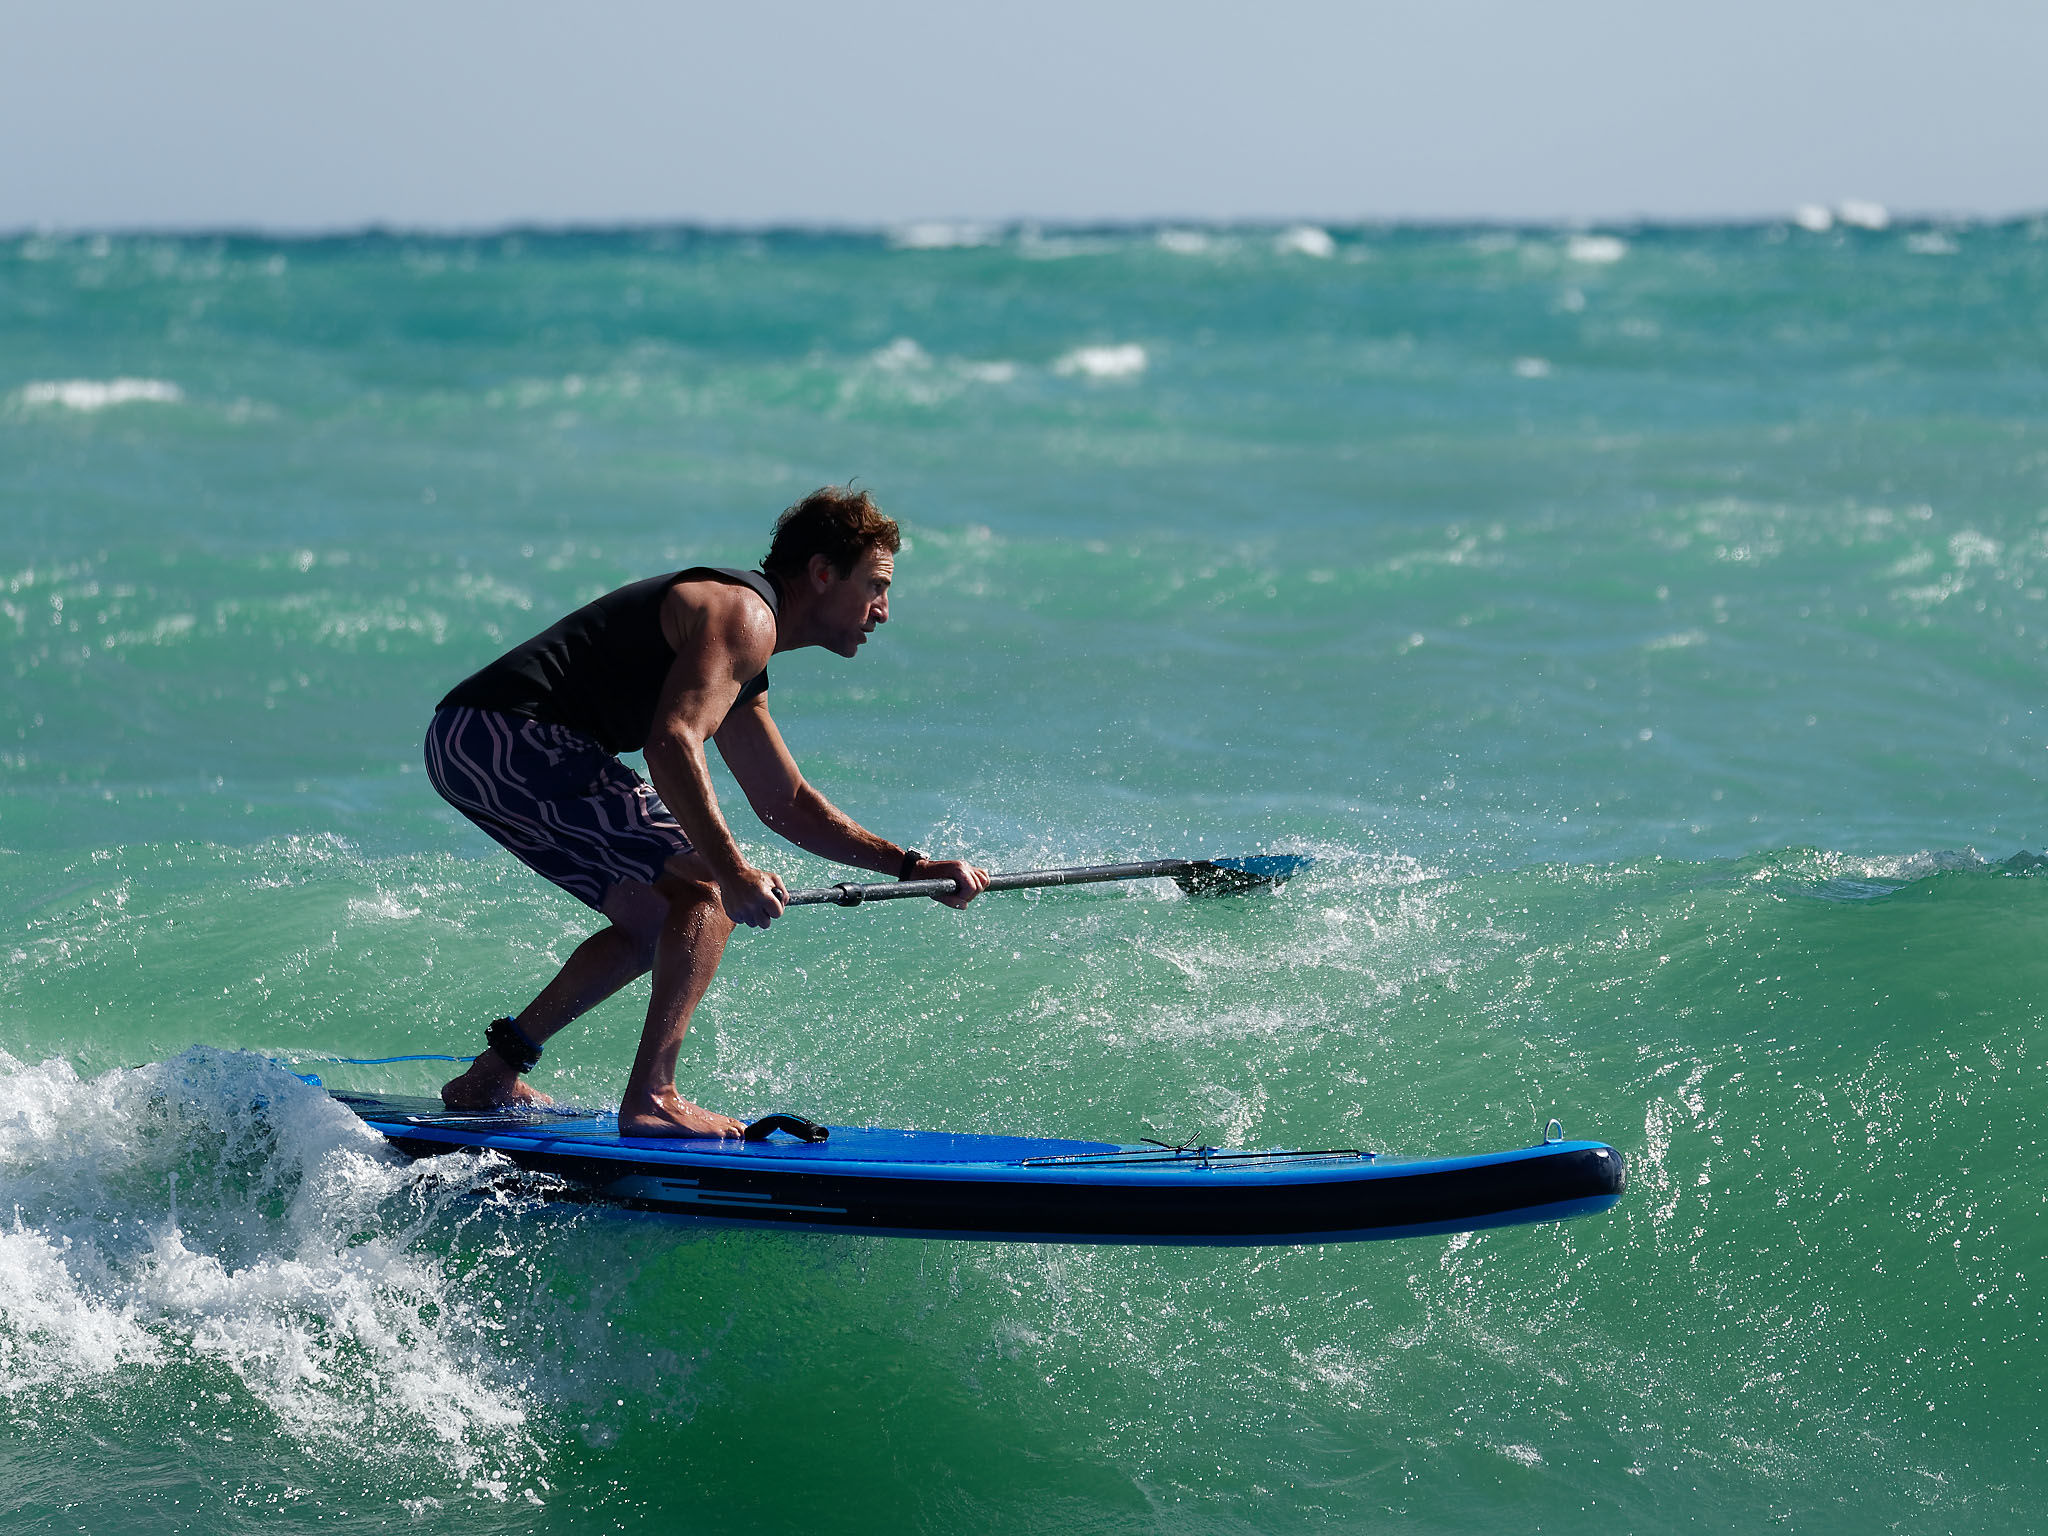 Paddling on a wave on an SUP